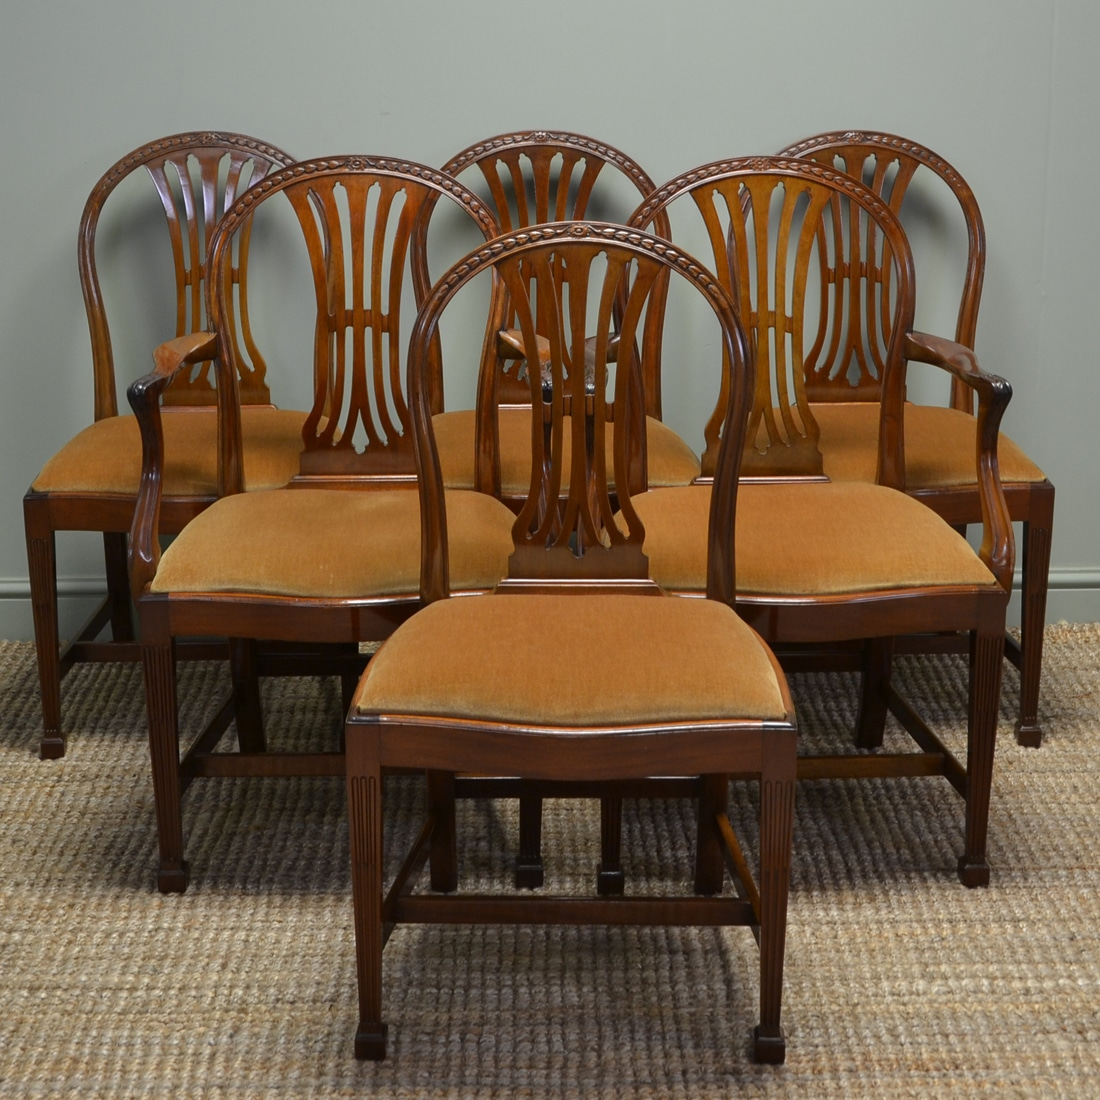 Vintage Dining Chair Quality Set Of Six Hepplewhite Design Edwardian Walnut